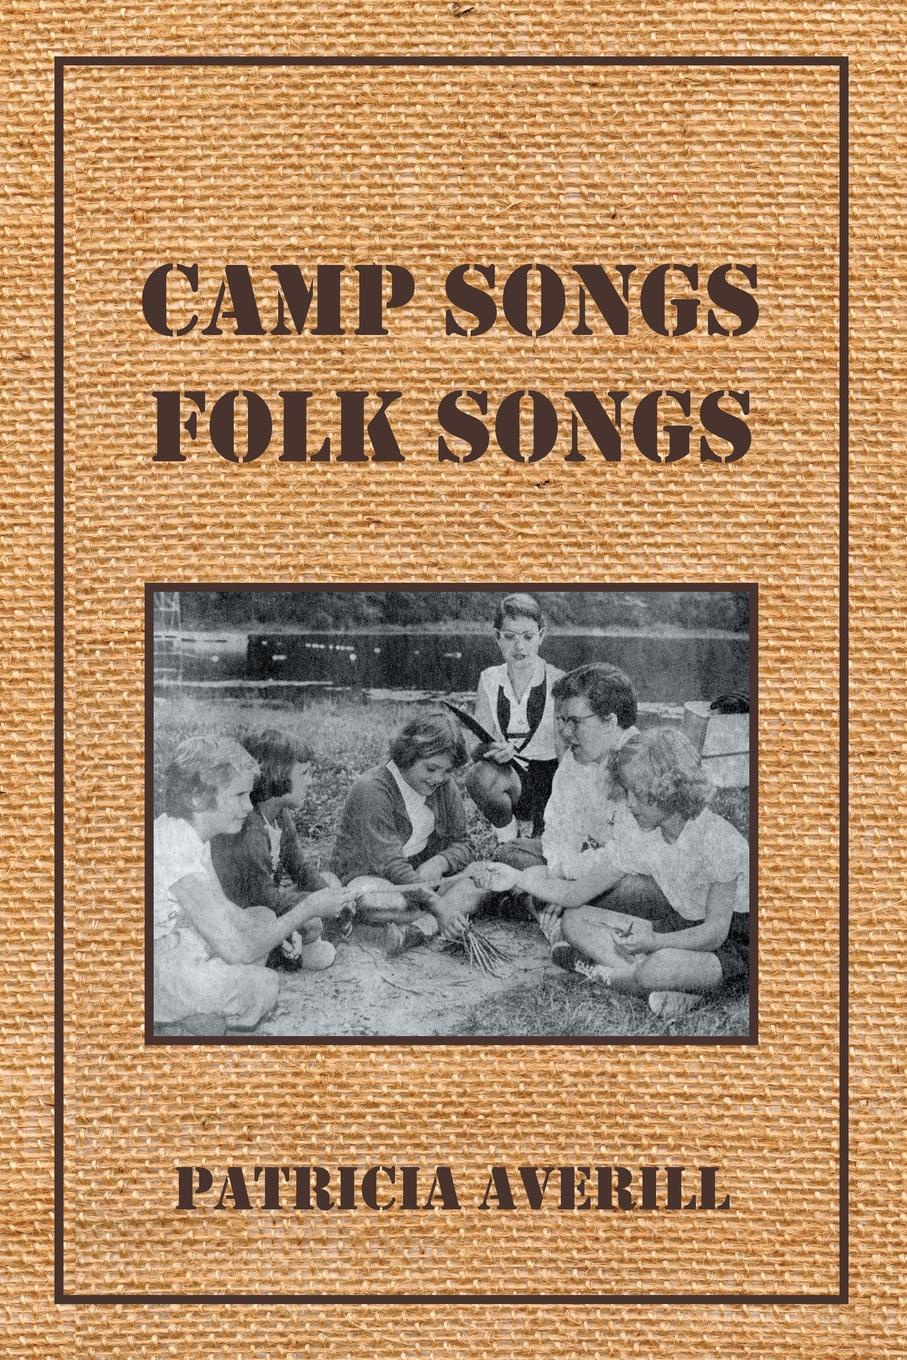 Patricia Averill Camp Songs, Folk Songs коллектив авторов folk songs from somerset